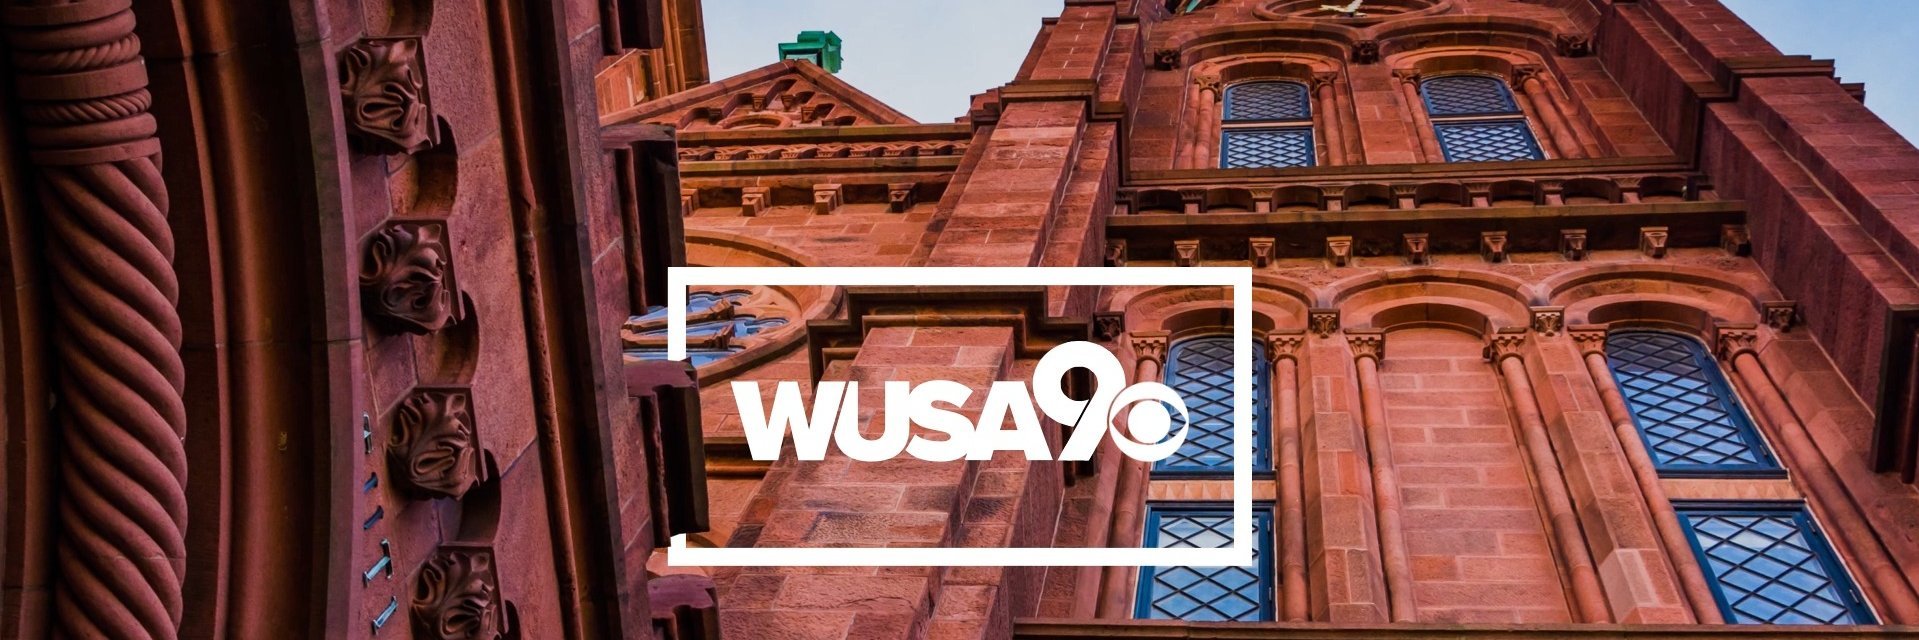 Attention @Verizon customers: @wusa9 is no longer available to you. Find out more at wusa9.com/verizon #KEEPMYWUSA9